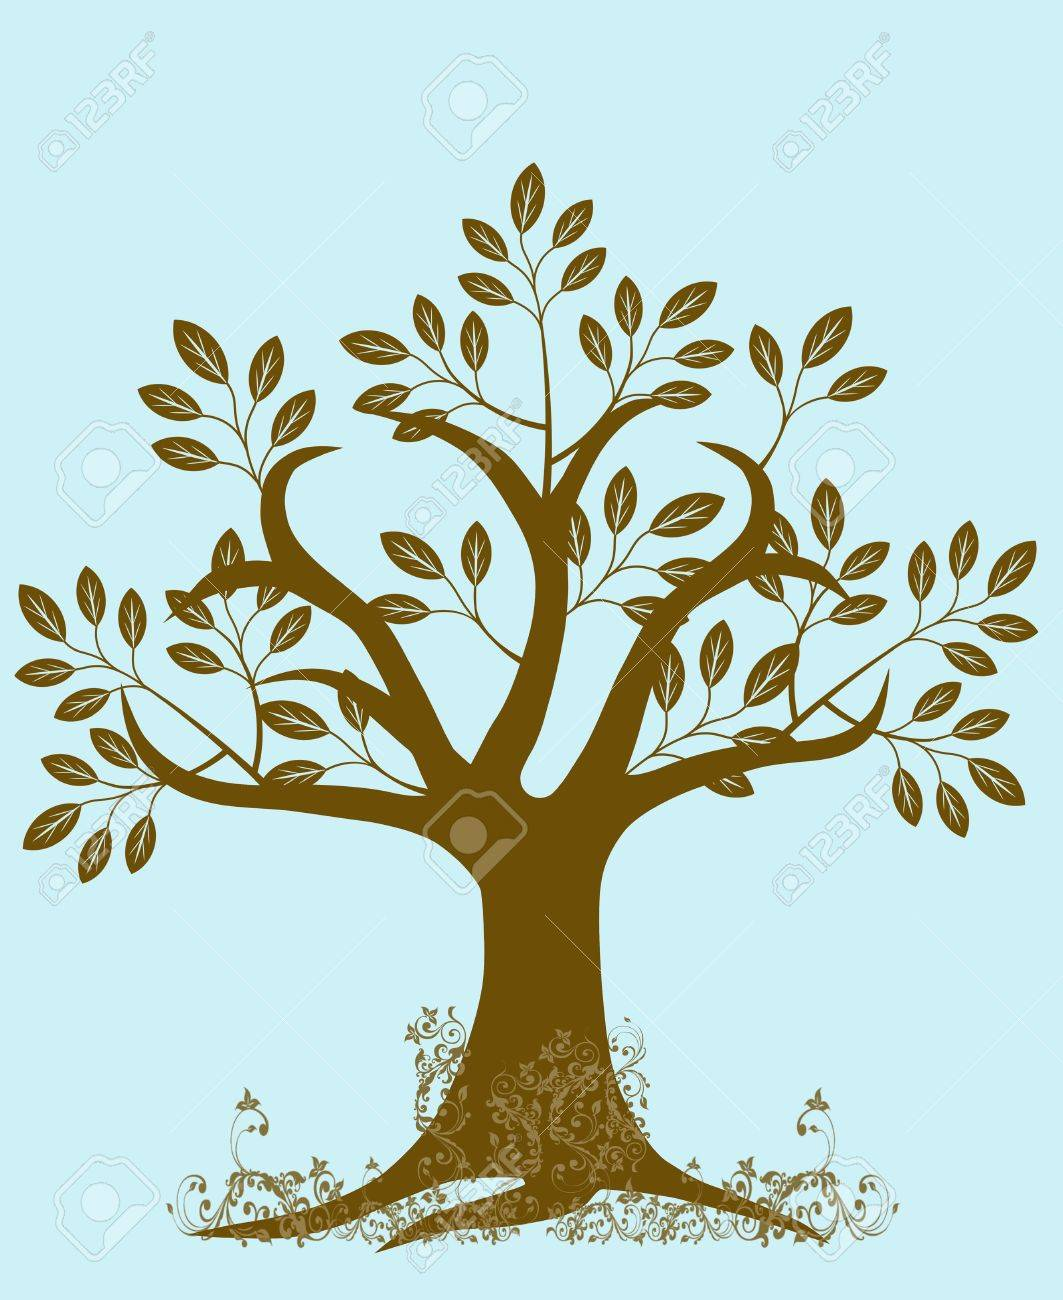 Abstract Tree Silhouette with Leaves and Vines on Blue Background Stock Photo - 8346487